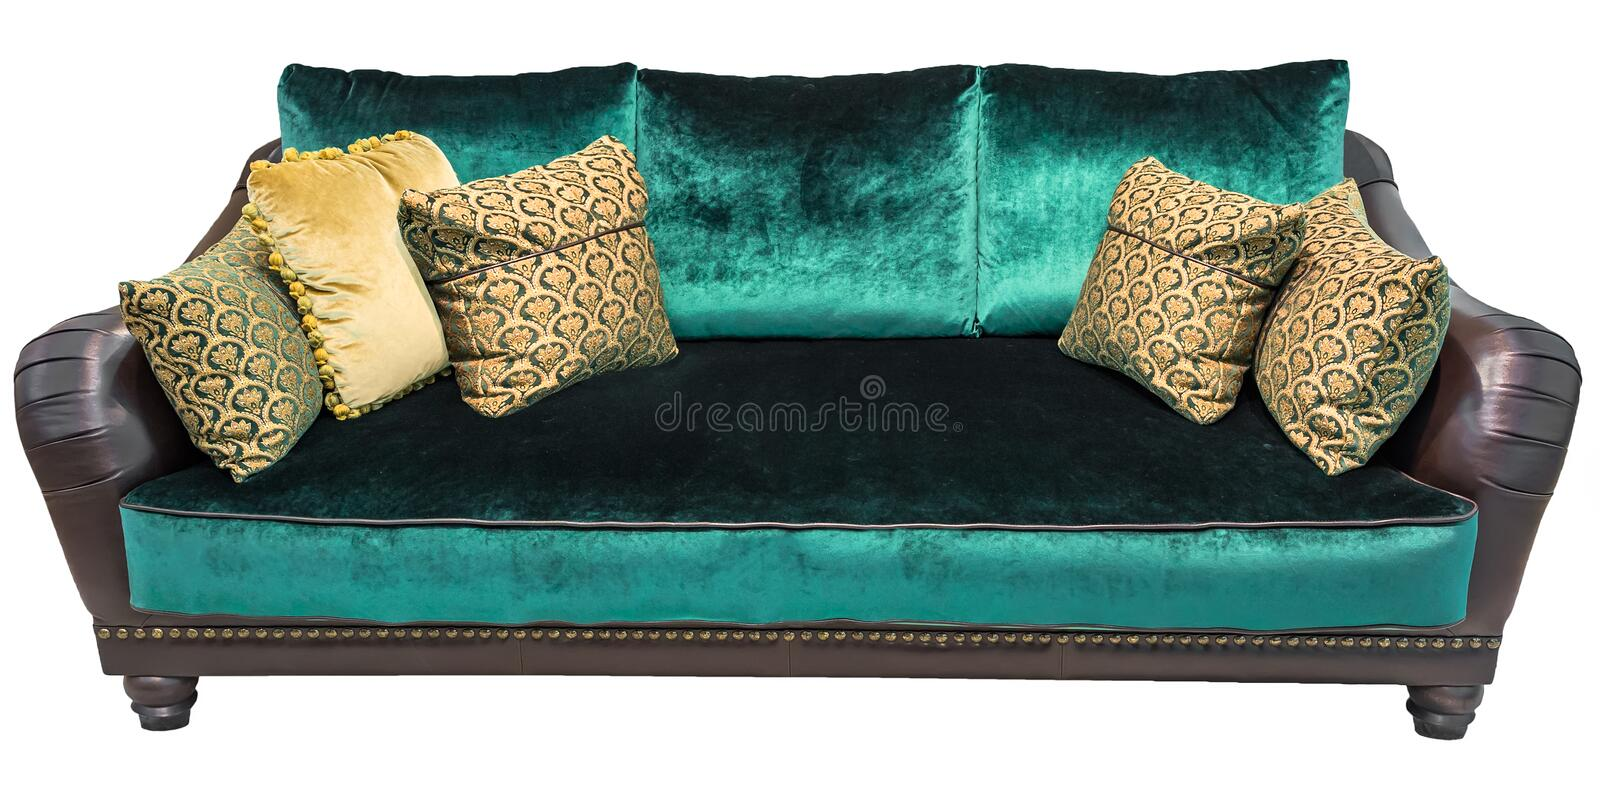 Green sofa with pillow. Soft emerald couch. Classic divan on isolated background. Velvet velor leather fabric sofa stock photography